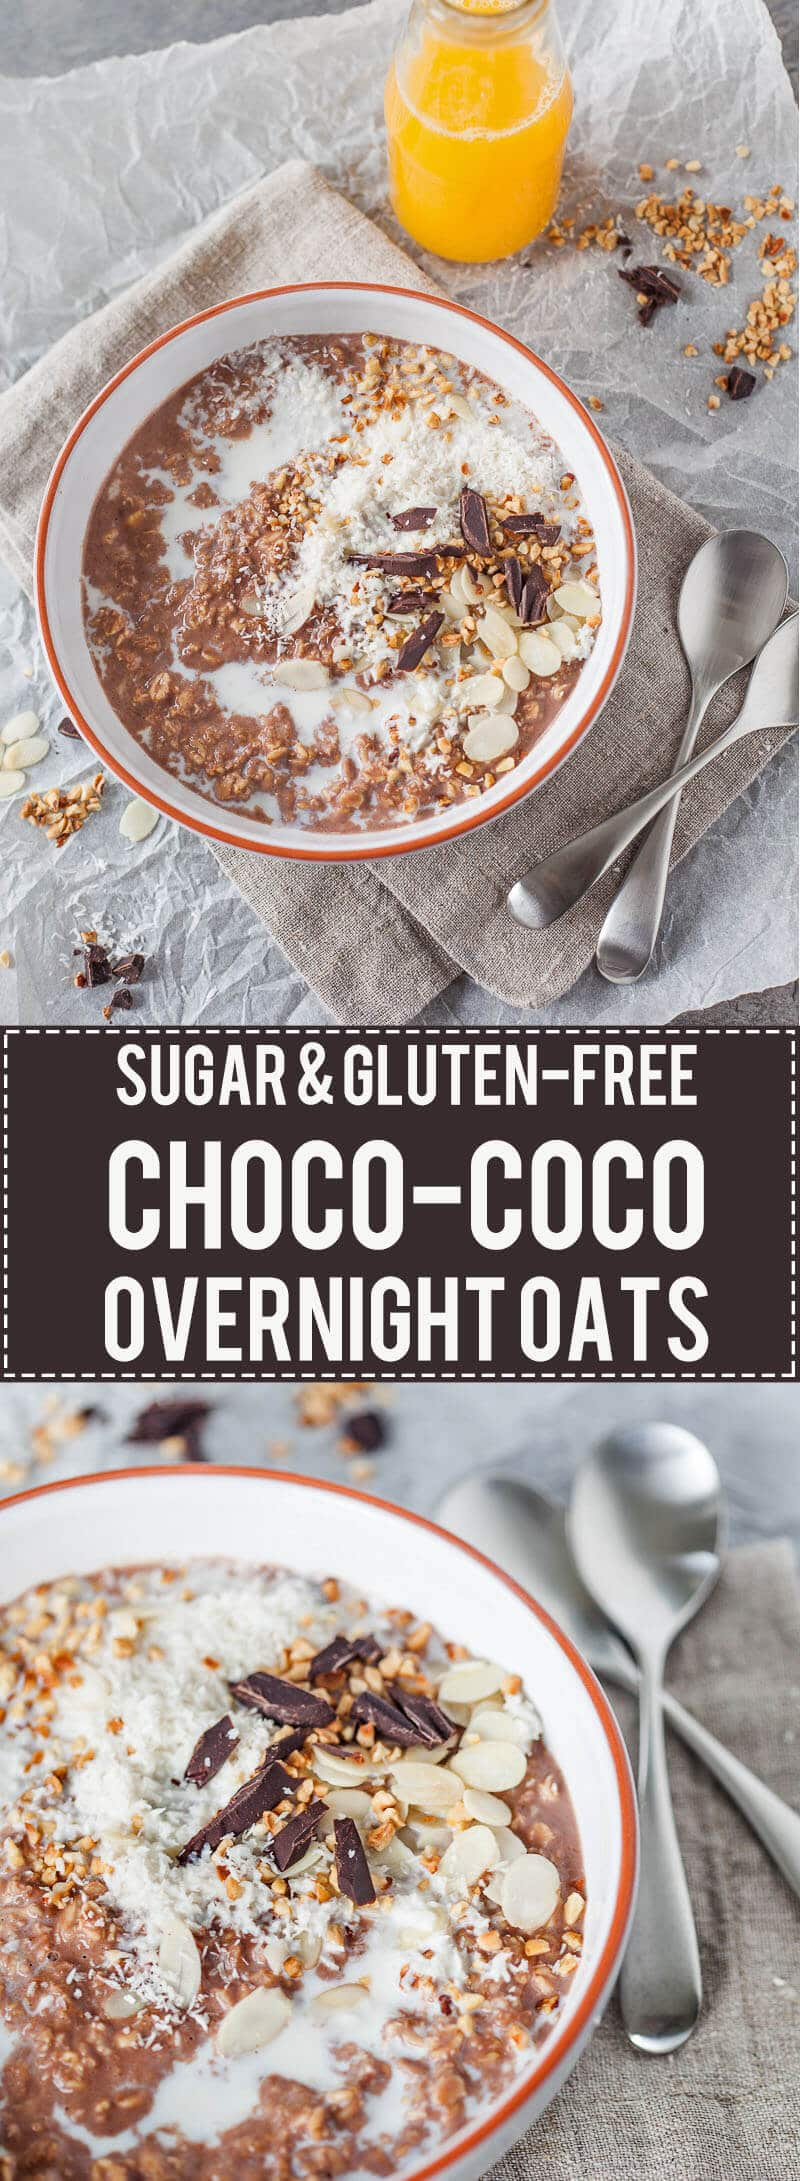 Sugar-free Choco-Coco Overnight Oats |